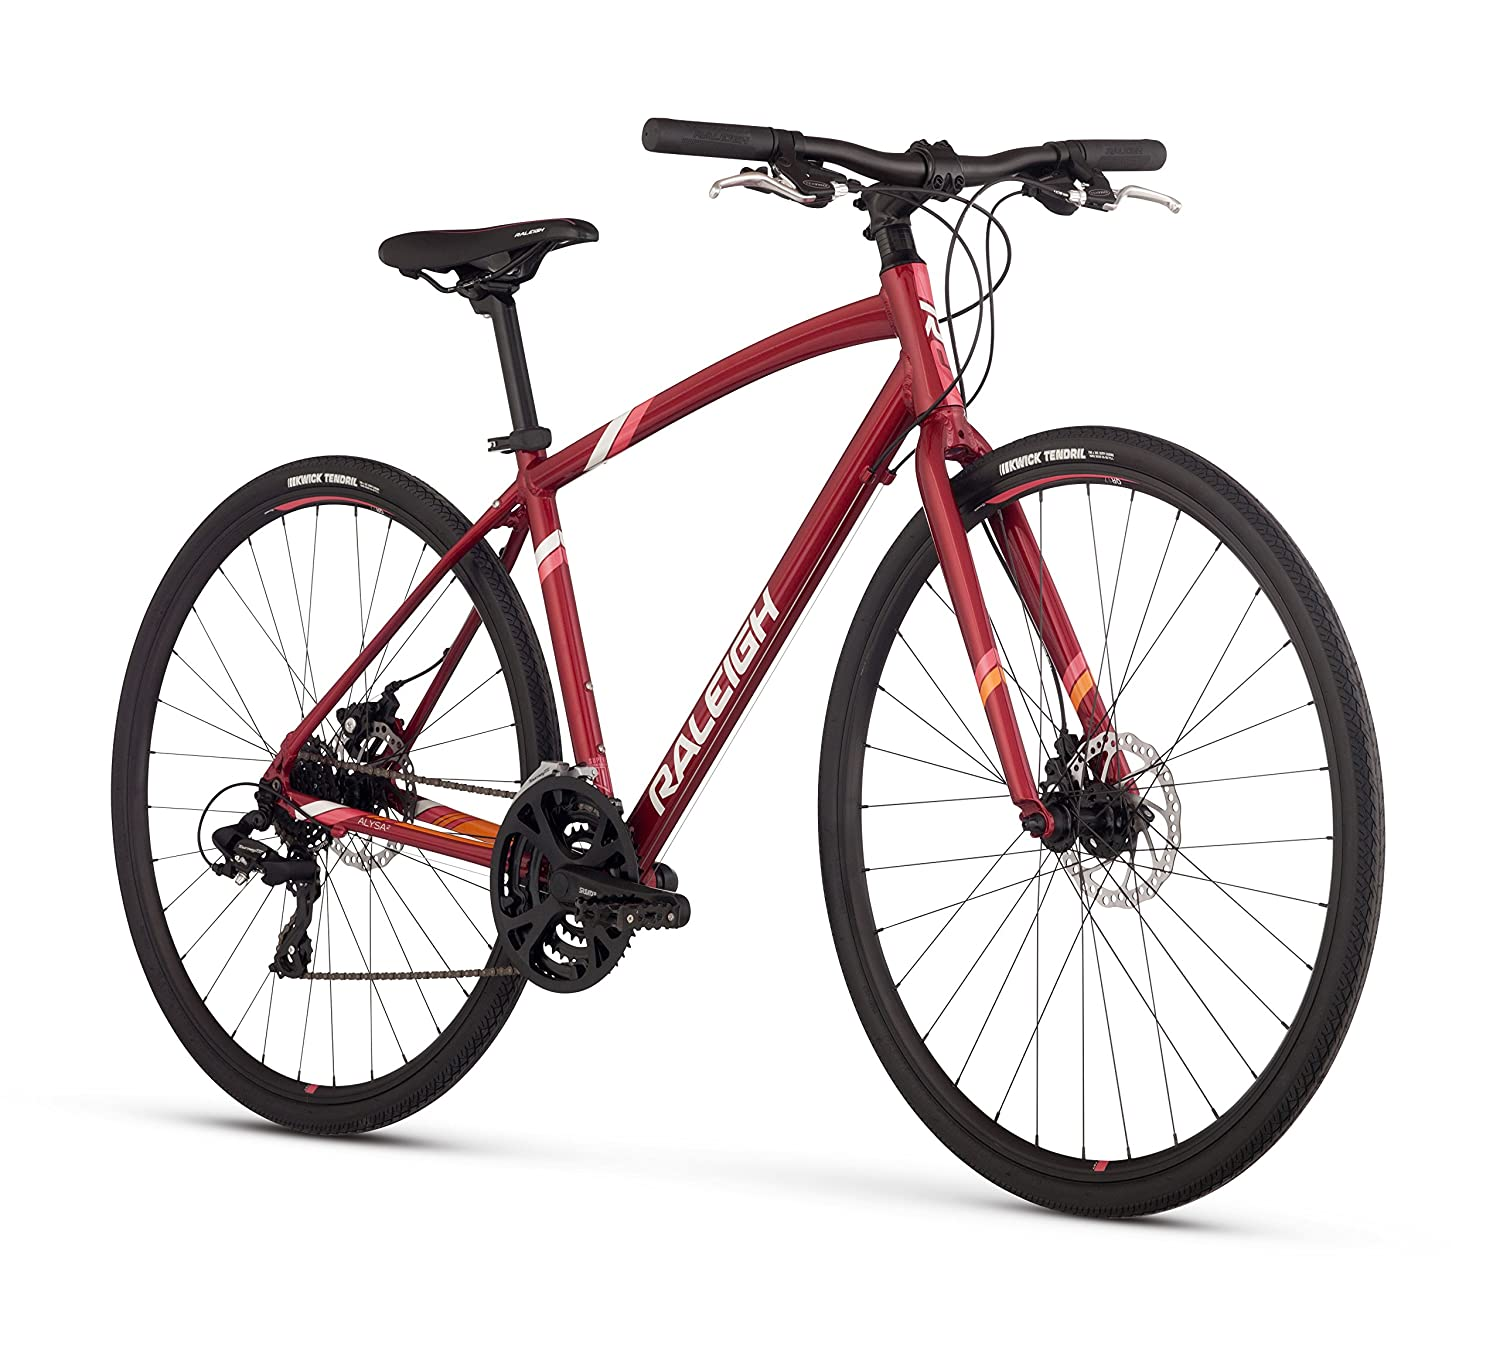 Raleigh Alysa Urban Bike Best Flat Bar Touring Bike